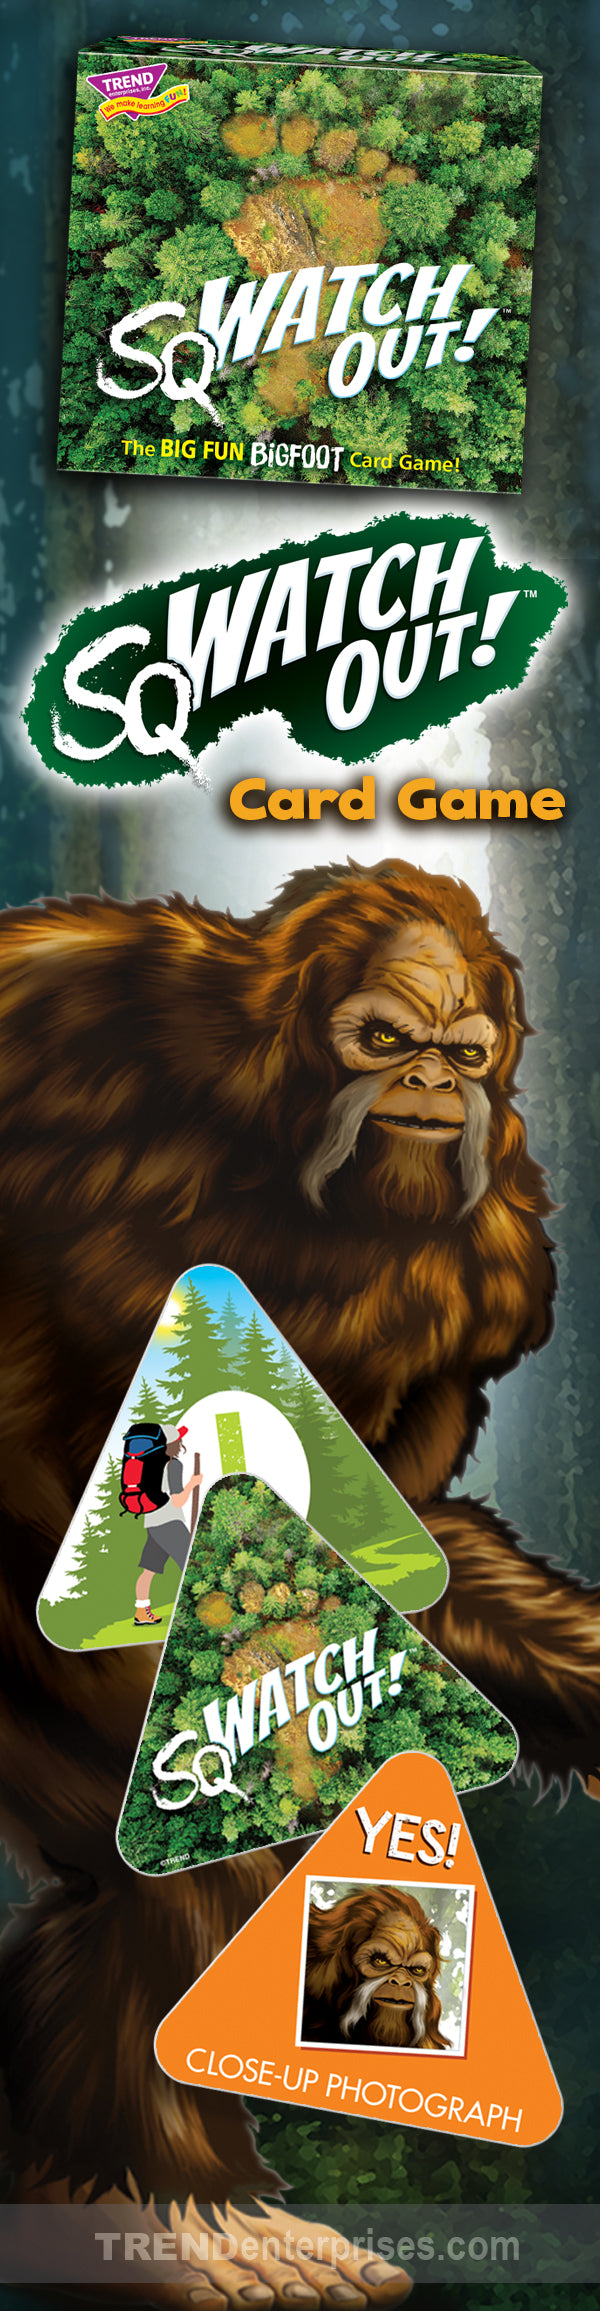 sqWATCH OUT! bigfoot card game for kids! The snap of a twig? A howl in the distance? sqWATCH OUT! When you hear it, you know! Test your memory and your appetite for mystery with this family-friendly card game that's all about Bigfoot and BIG fun!